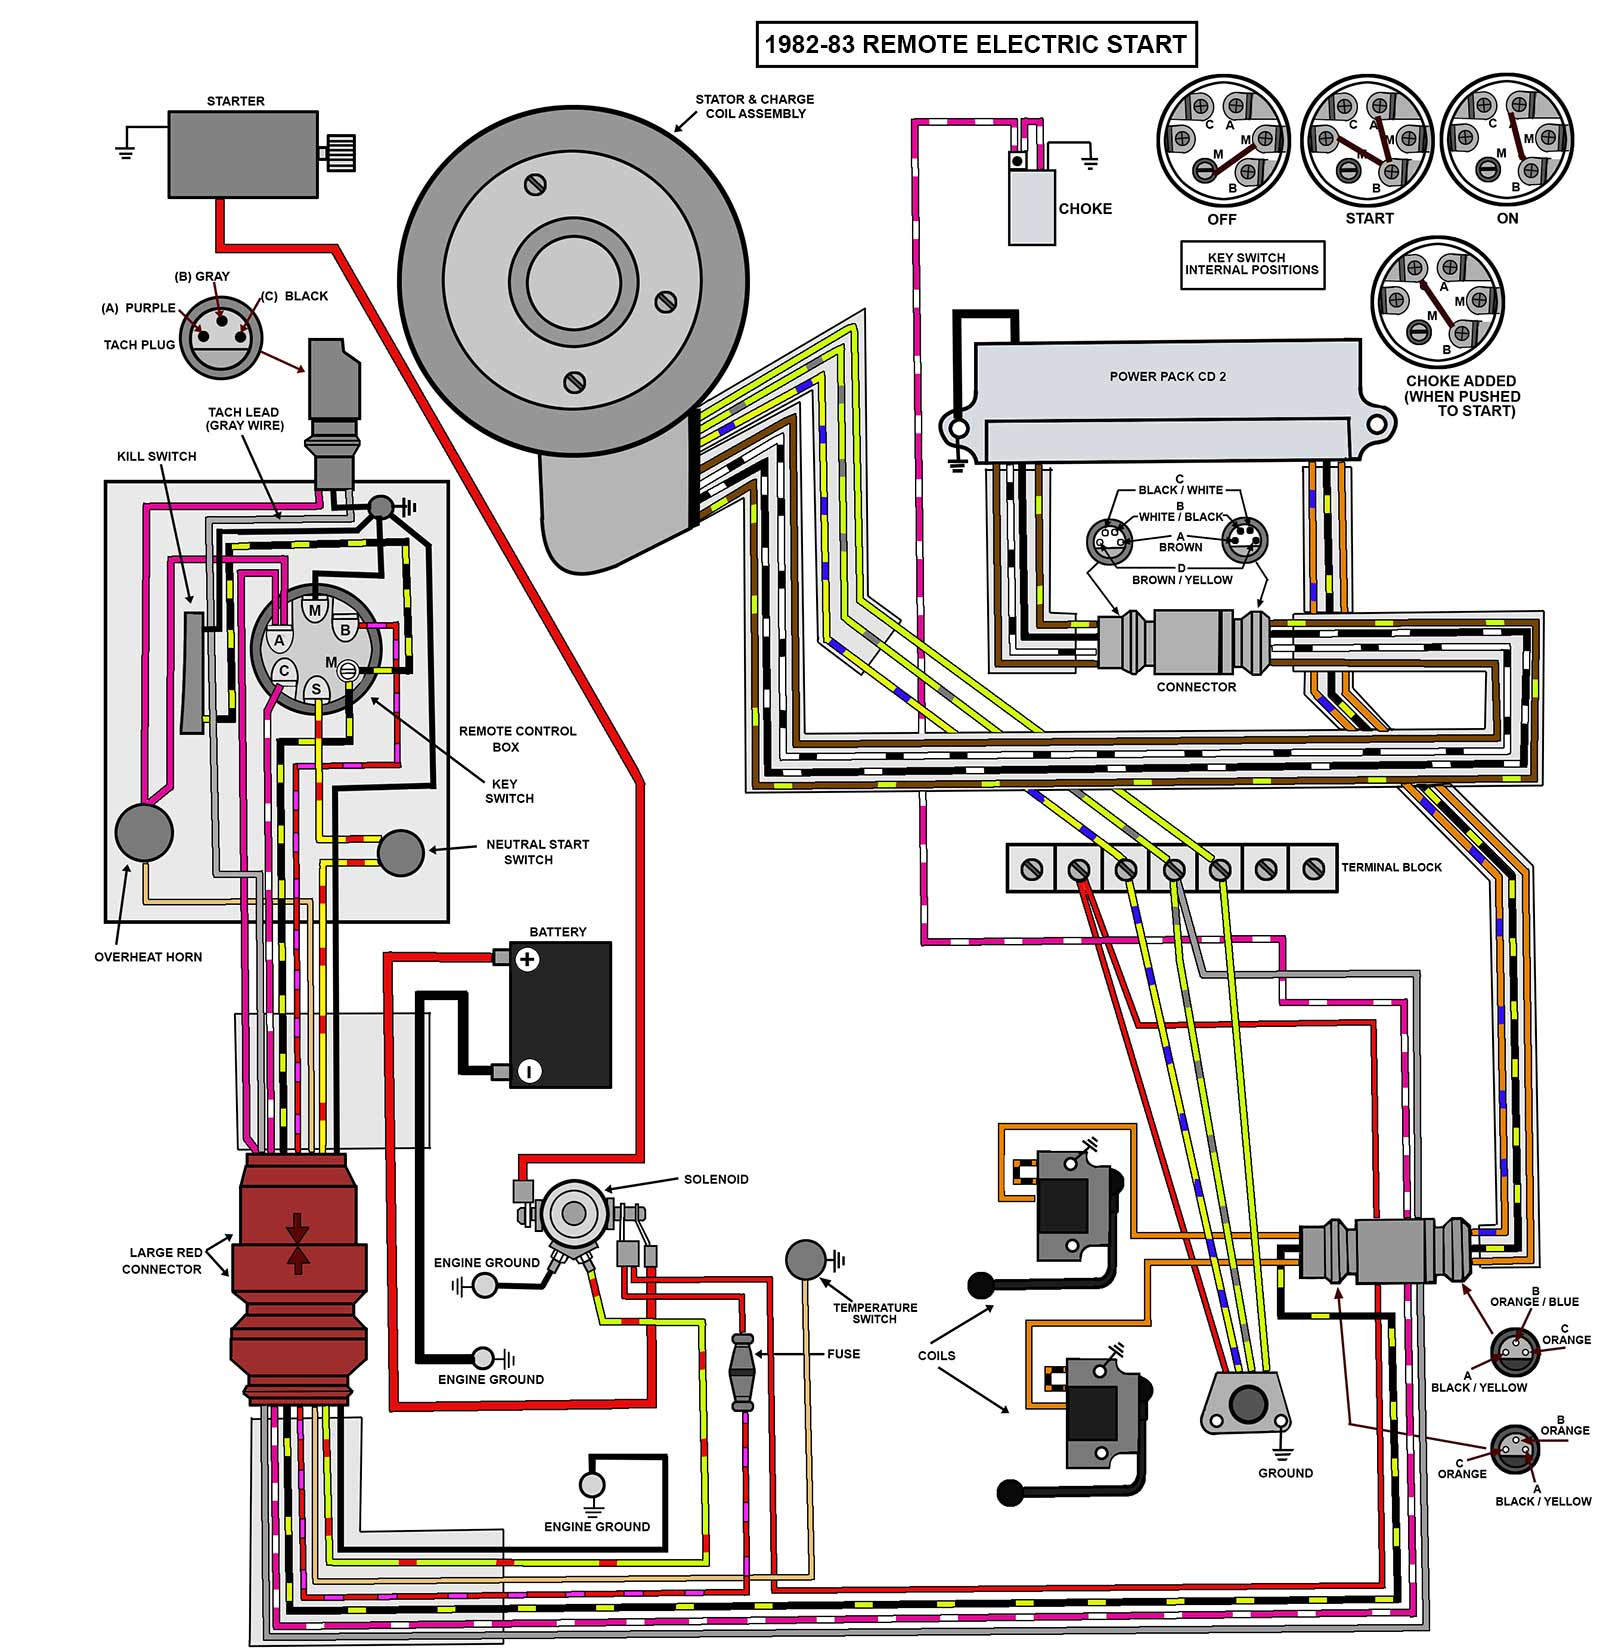 25_35_82 83_elec remote mastertech marine evinrude johnson outboard wiring diagrams 1969 evinrude 55 hp wiring diagram at eliteediting.co